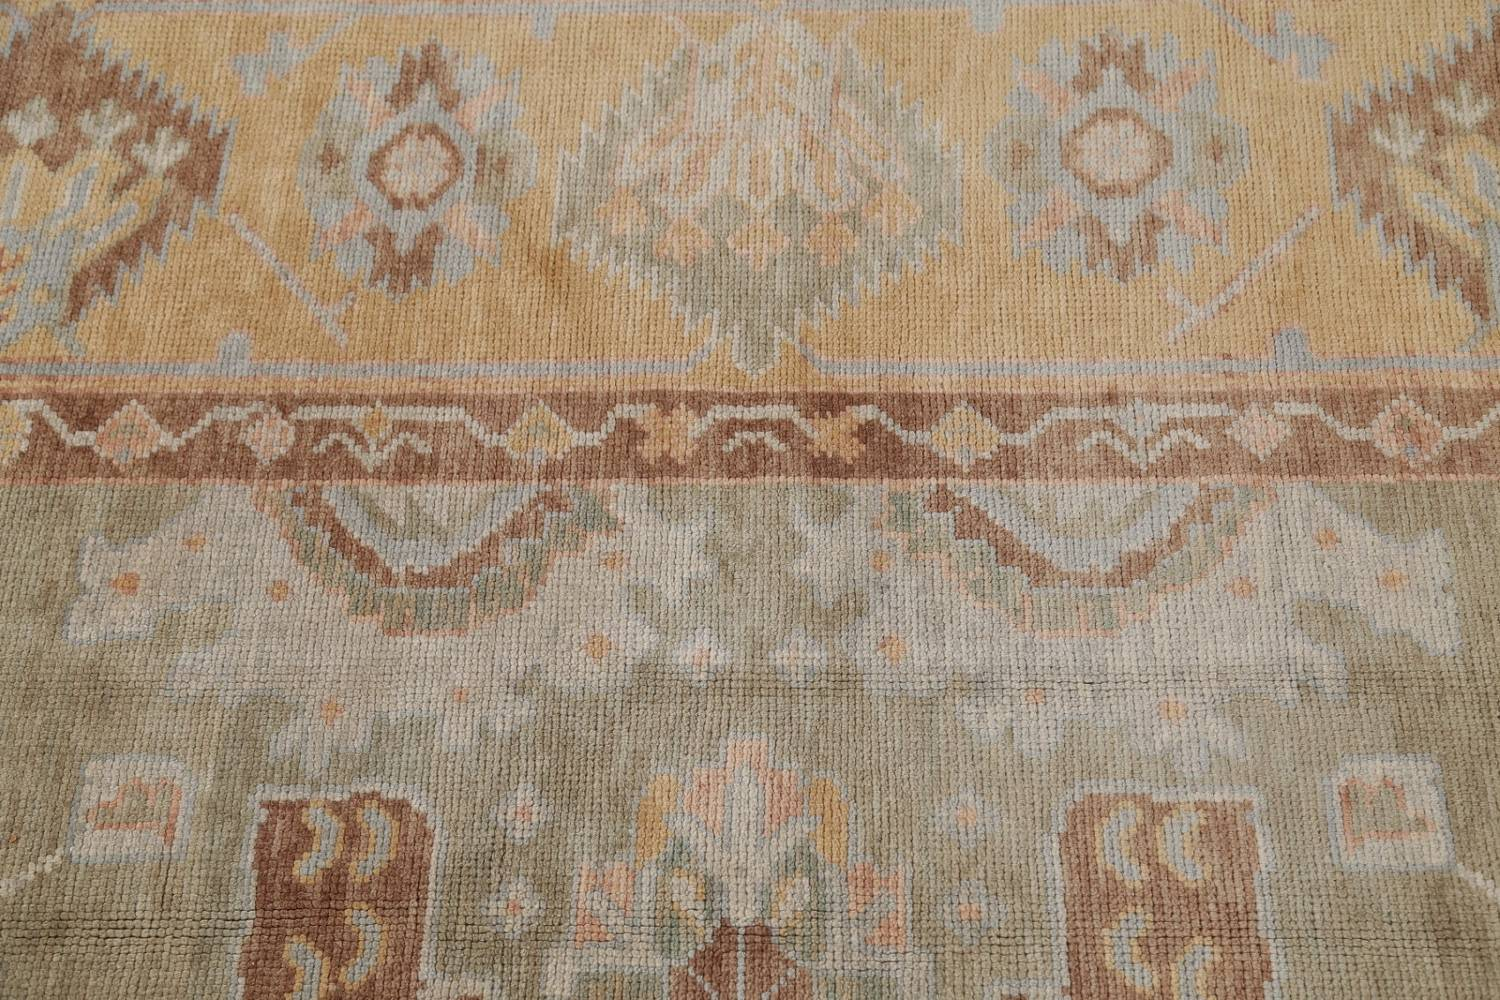 Vegetable Dye Muted Green Oushak Turkish Hand-Knotted Area Rug 9x12 image 11